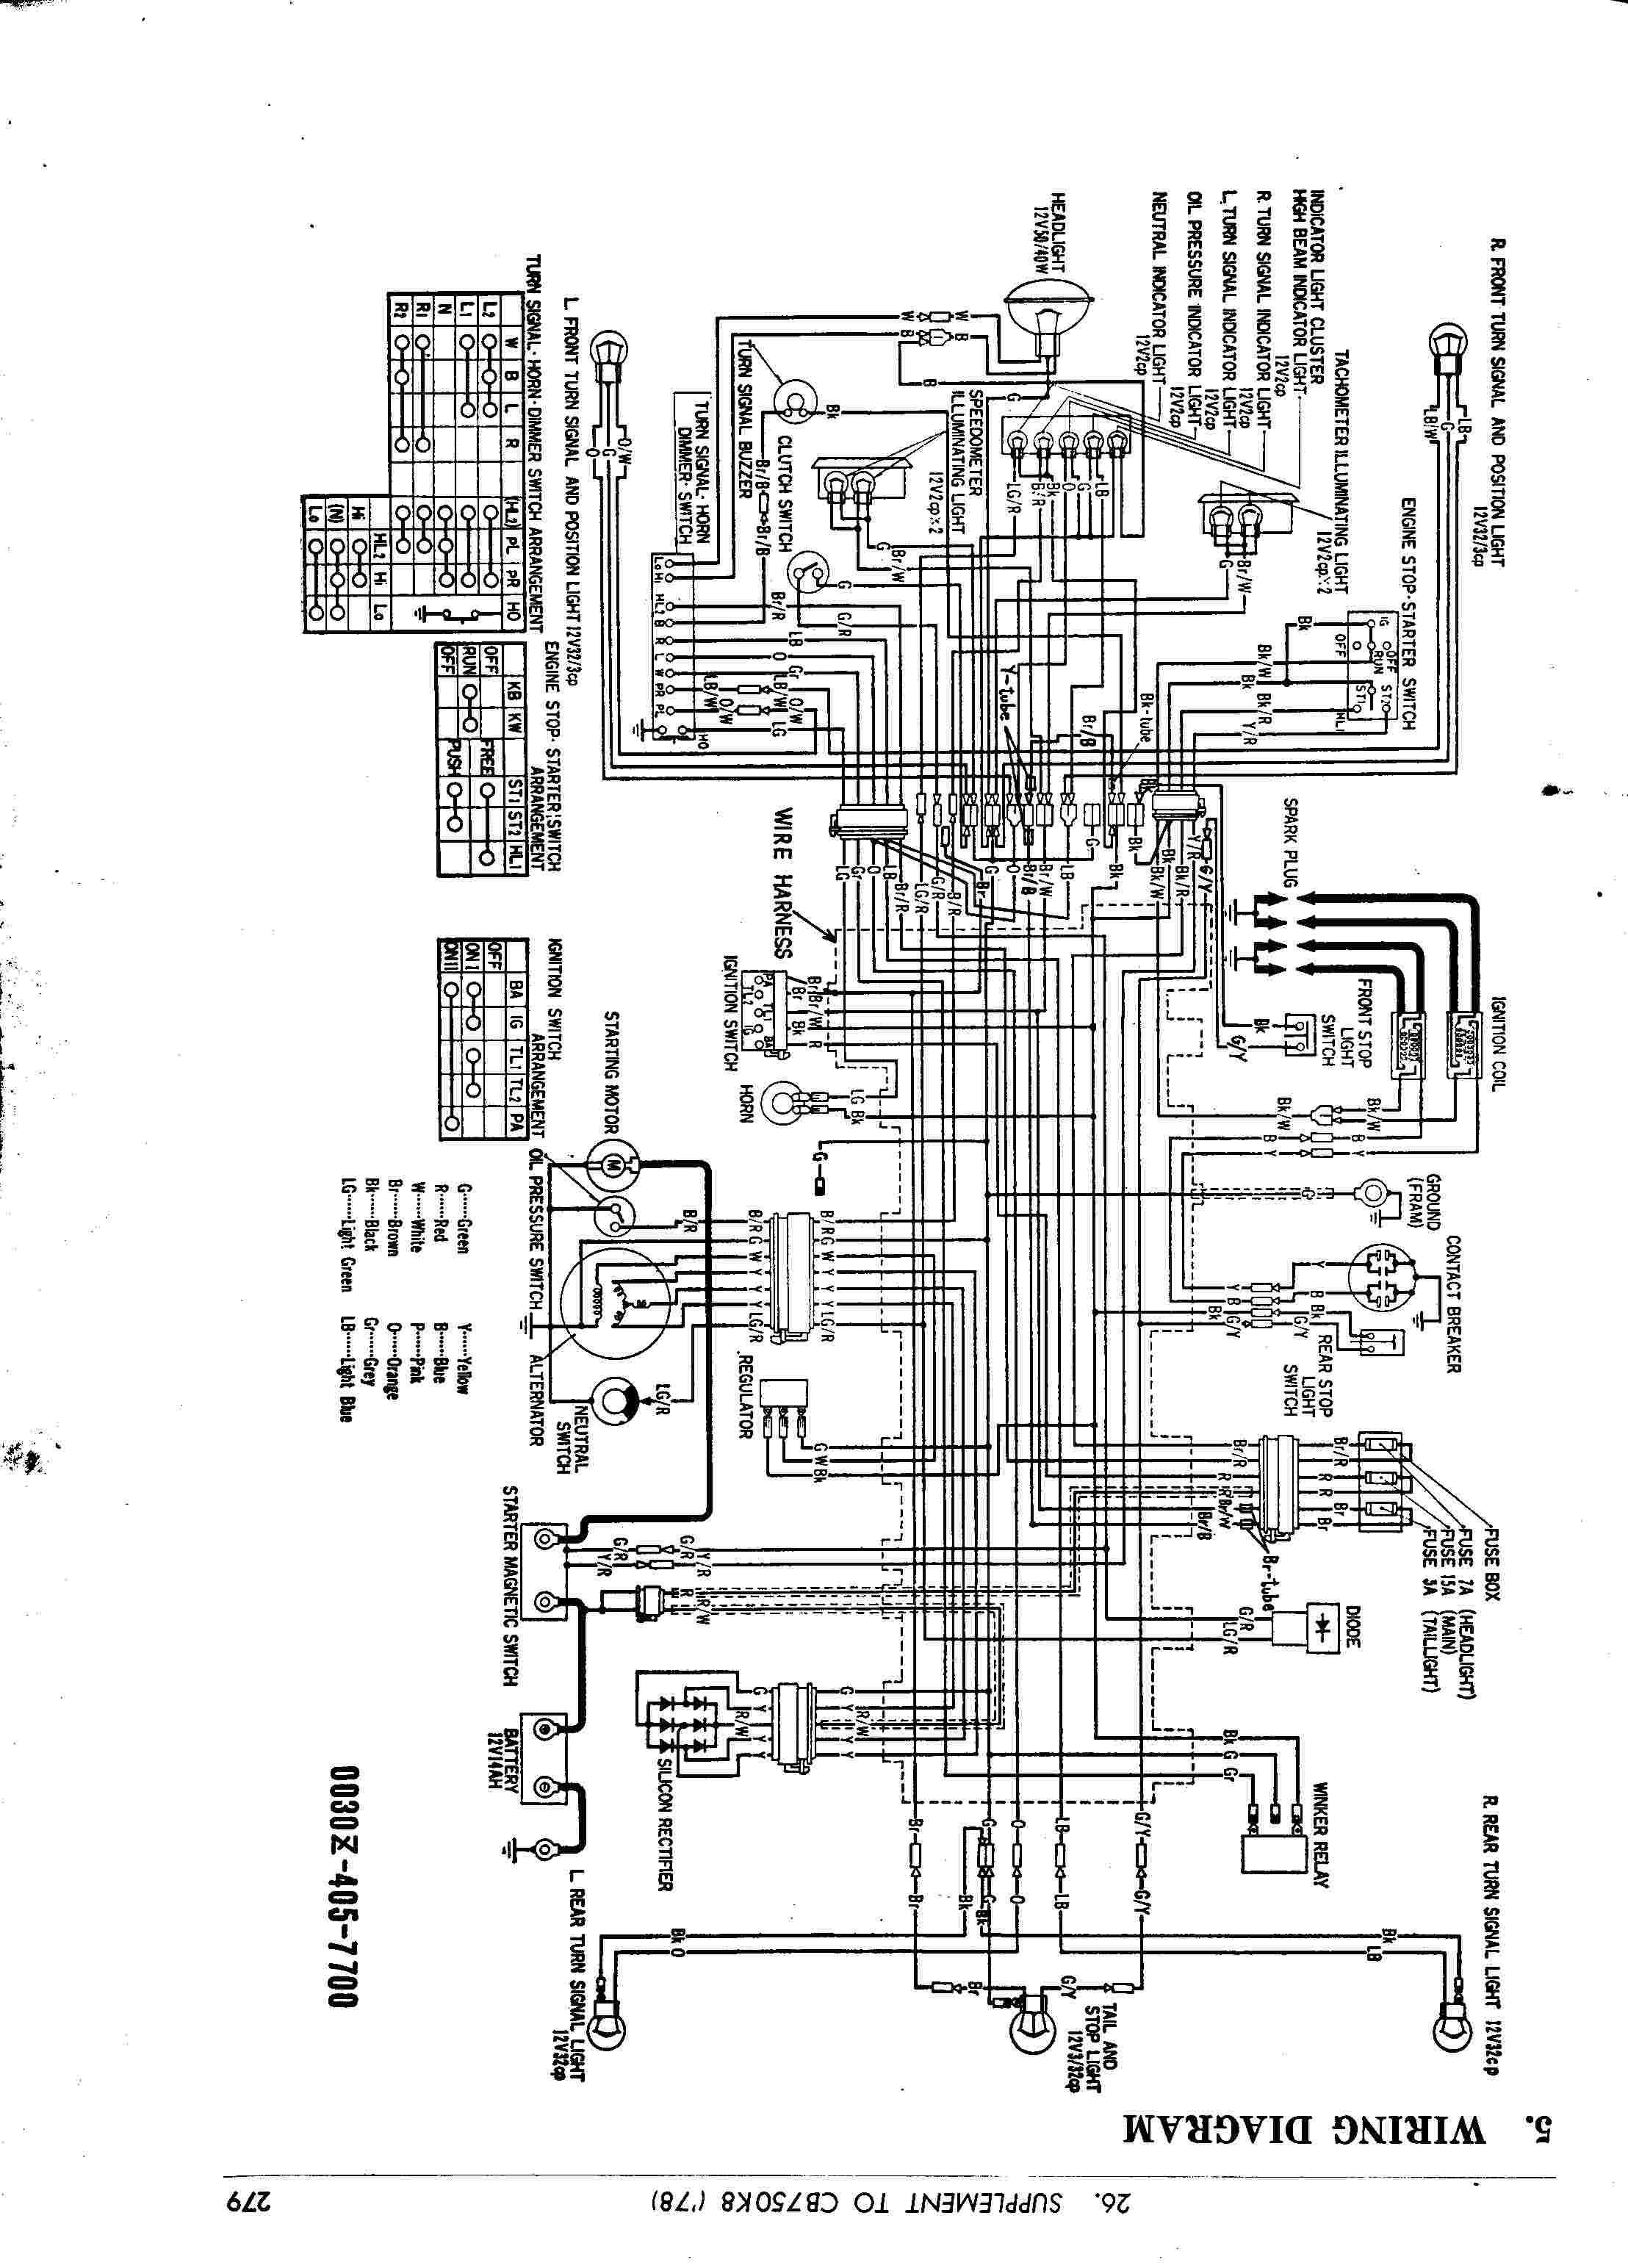 1981 Honda Goldwing Wiring Diagram besides Repair And Service Manuals besides Wiring Diagrams With 1978 Honda Cb750 Diagram also Honda Cm400 Wiring Diagram together with 1969 Honda Ct90 Wiring Diagram. on 1980 honda cb750 wiring diagram